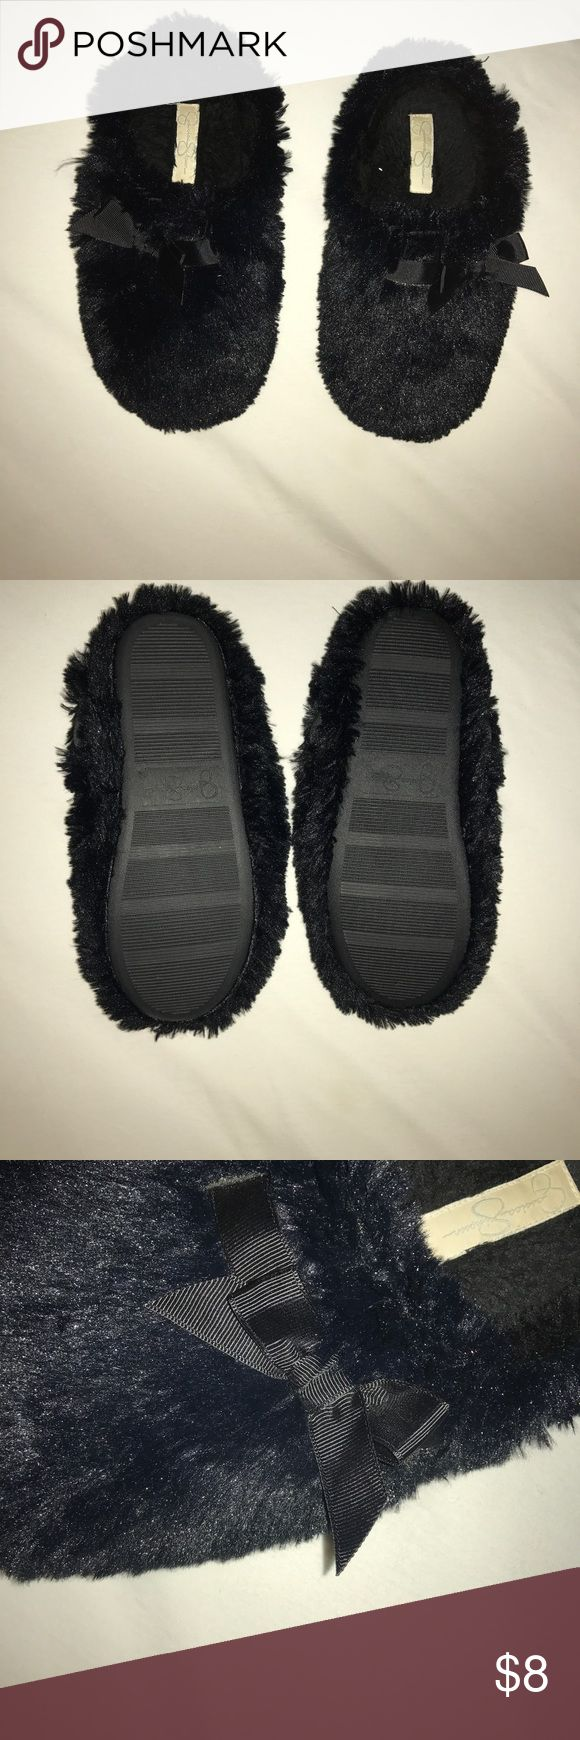 Black furry Jessica Simpson Slippers with bow Super cute and cozy!! Barley worn, selling because I do not wear anymore. Size 9-9.5 Jessica Simpson Shoes Slippers